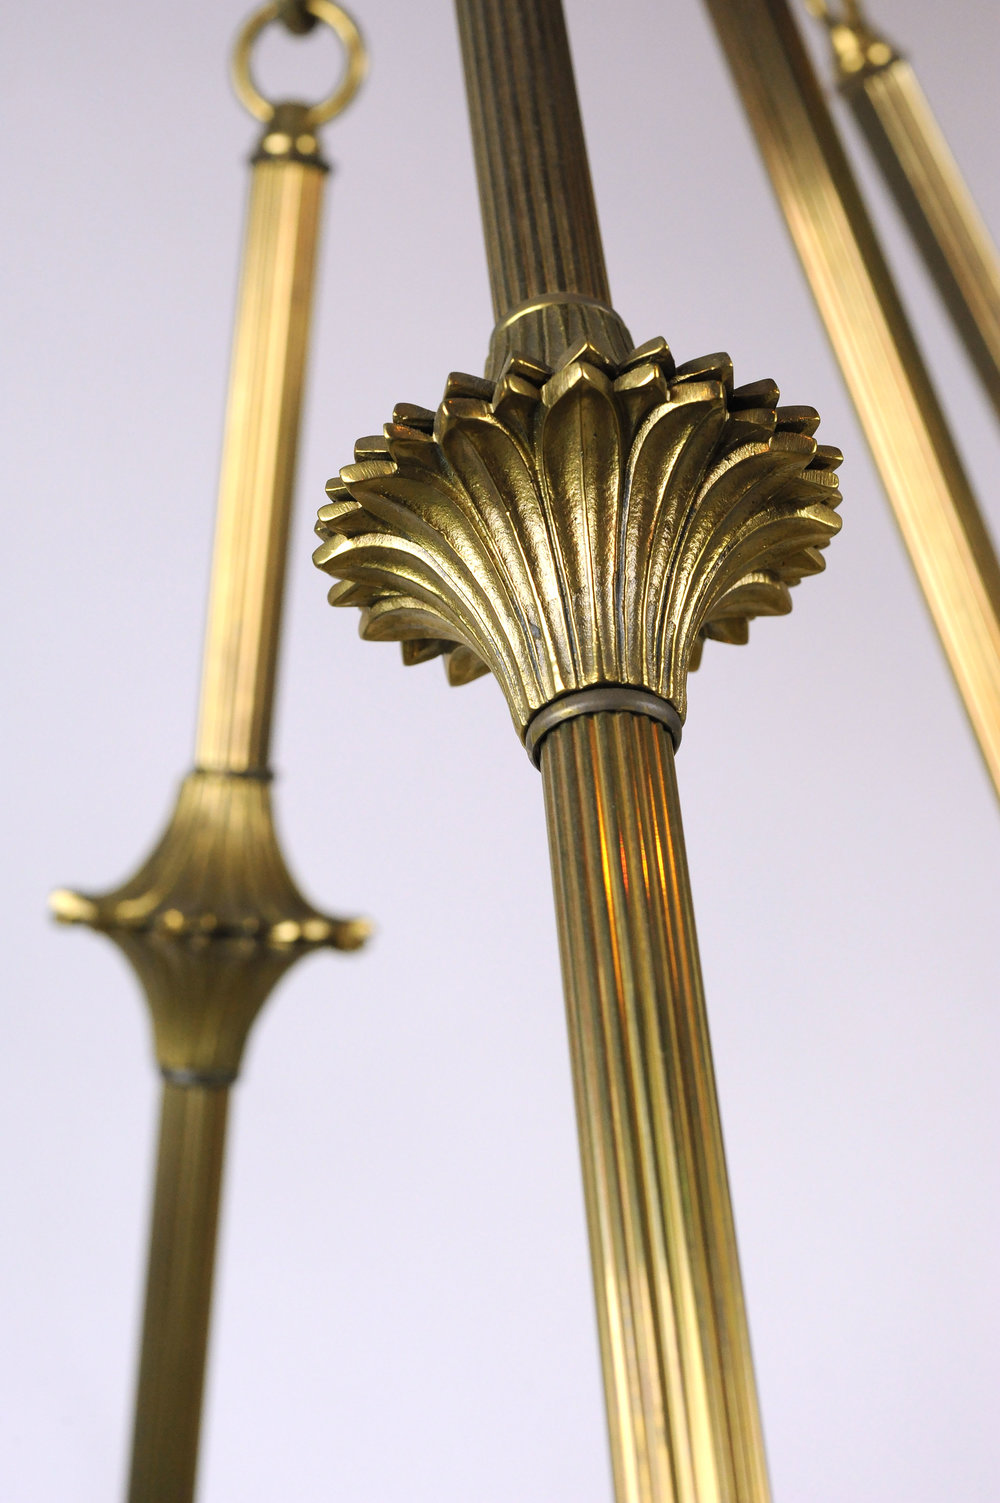 47132-cast-brass-bowl-chandelier-hanging-rods.jpg